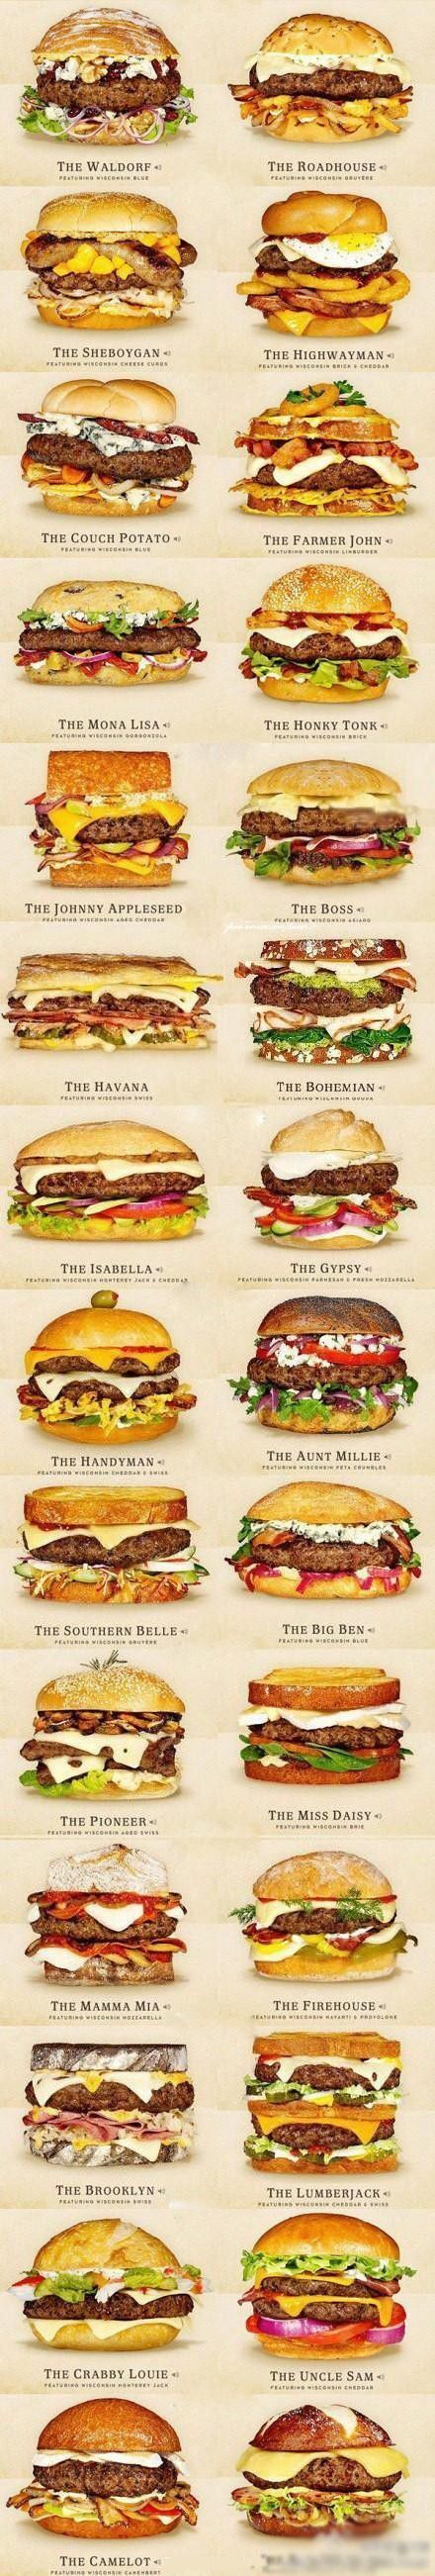 Cheeseburger ideas-SR